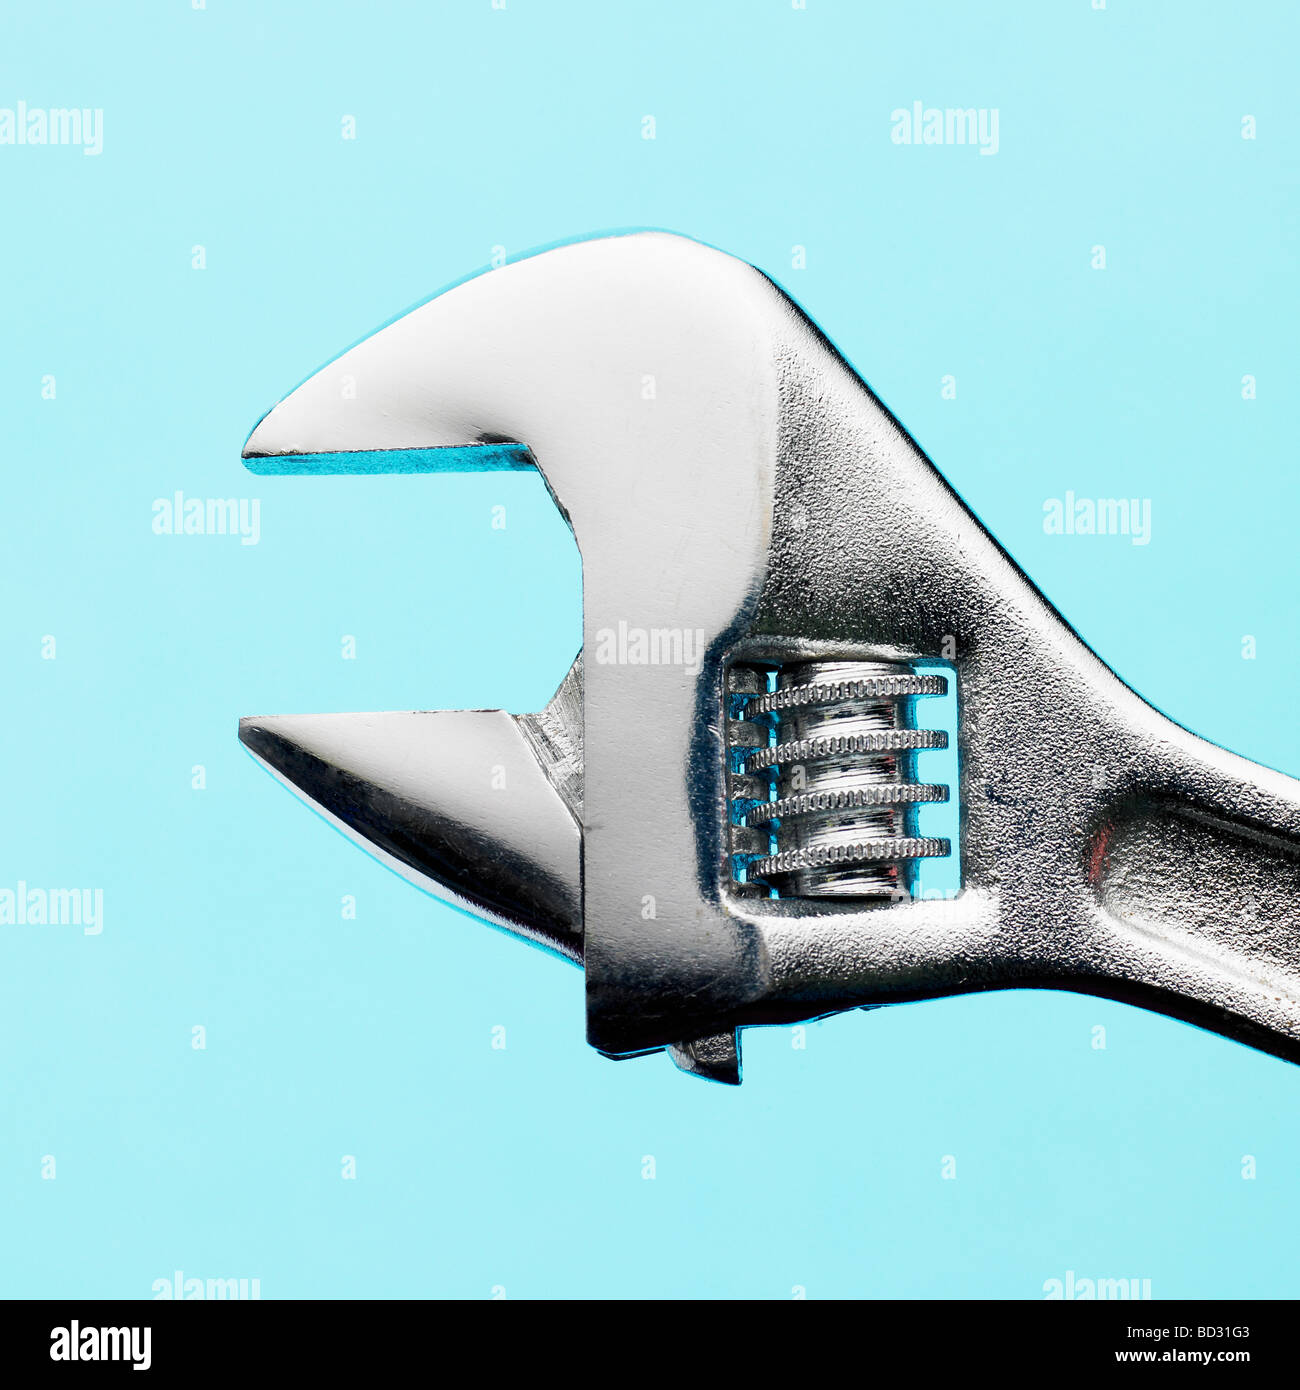 Adjustable chrome spanner on blue background. - Stock Image